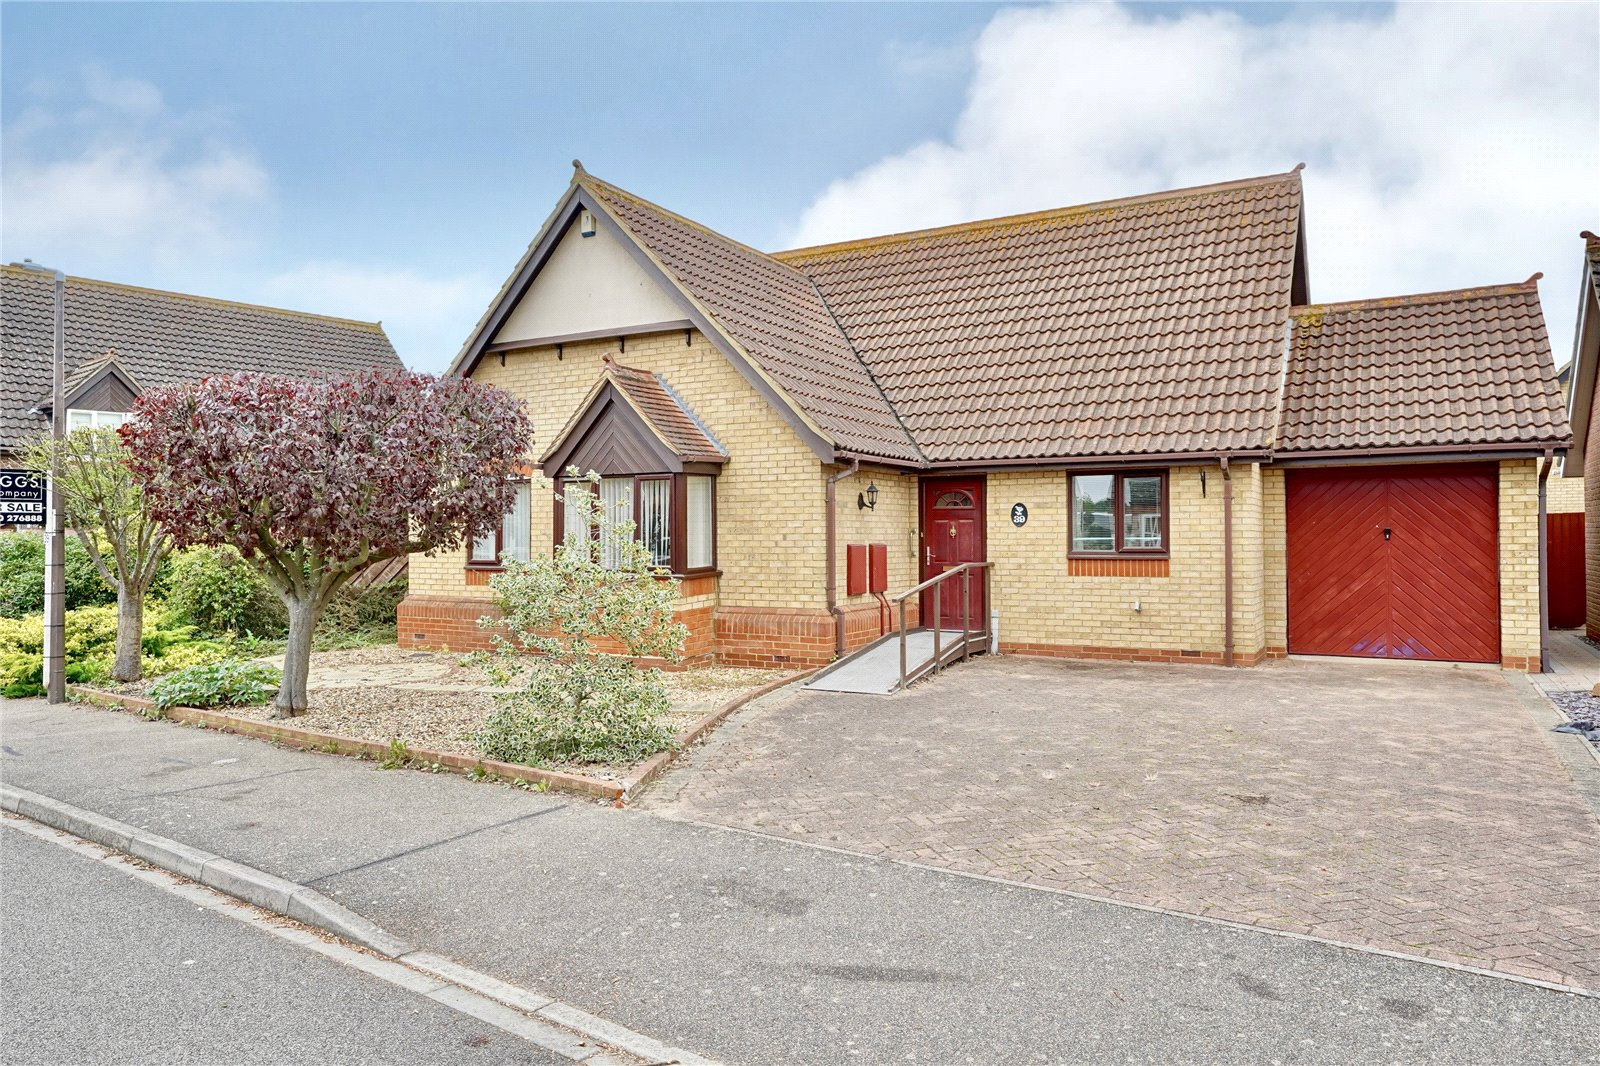 3 bed  for sale in Merlin Drive, Sandy, SG19